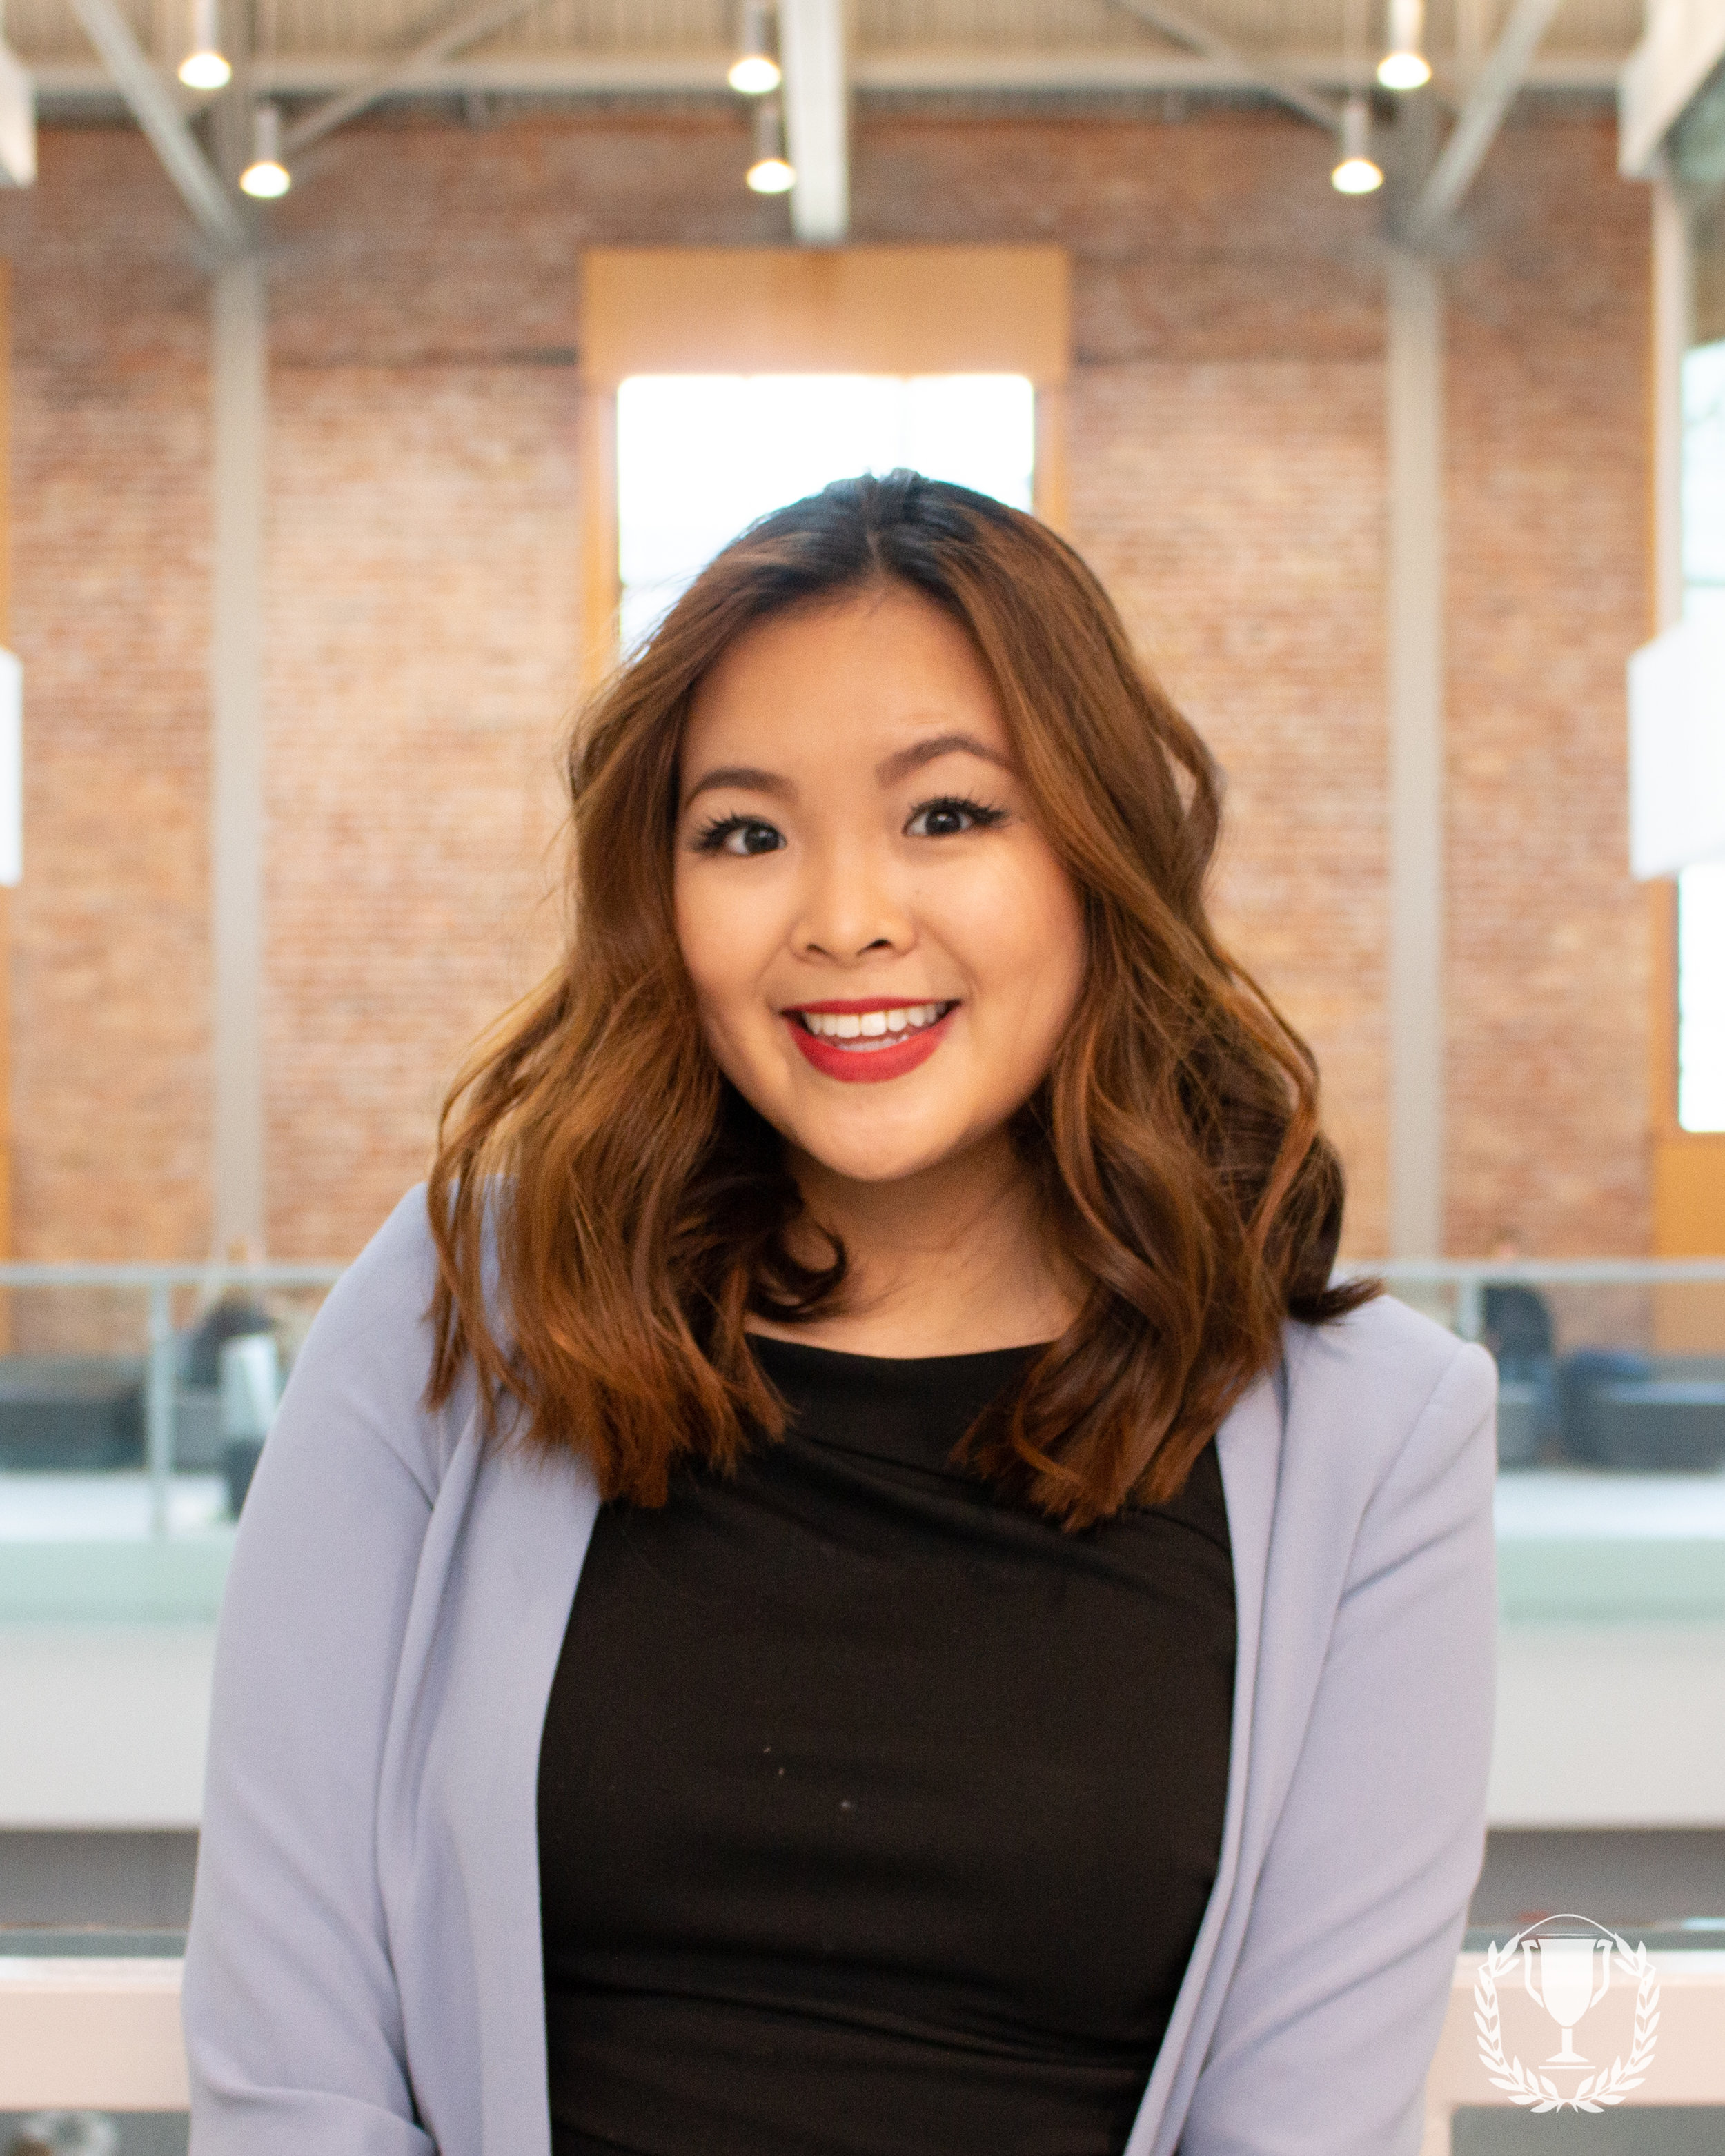 Claire Zhou - QCC & Debate Director   Claire is ecstatic to be returning to the I.C.B.C. team for another outstanding year of competition with high calibre competitors and executive members. She is looking forward to organizing the highly anticipated Queen's Case Competition. Along with her talented team, she is excited to maximize what I.C.B.C. has to offer. In her spare time, you can find Claire boxing, reading, or talking about her veganism. She also enjoys a good conversation - so when you see her, feel free to say hi!